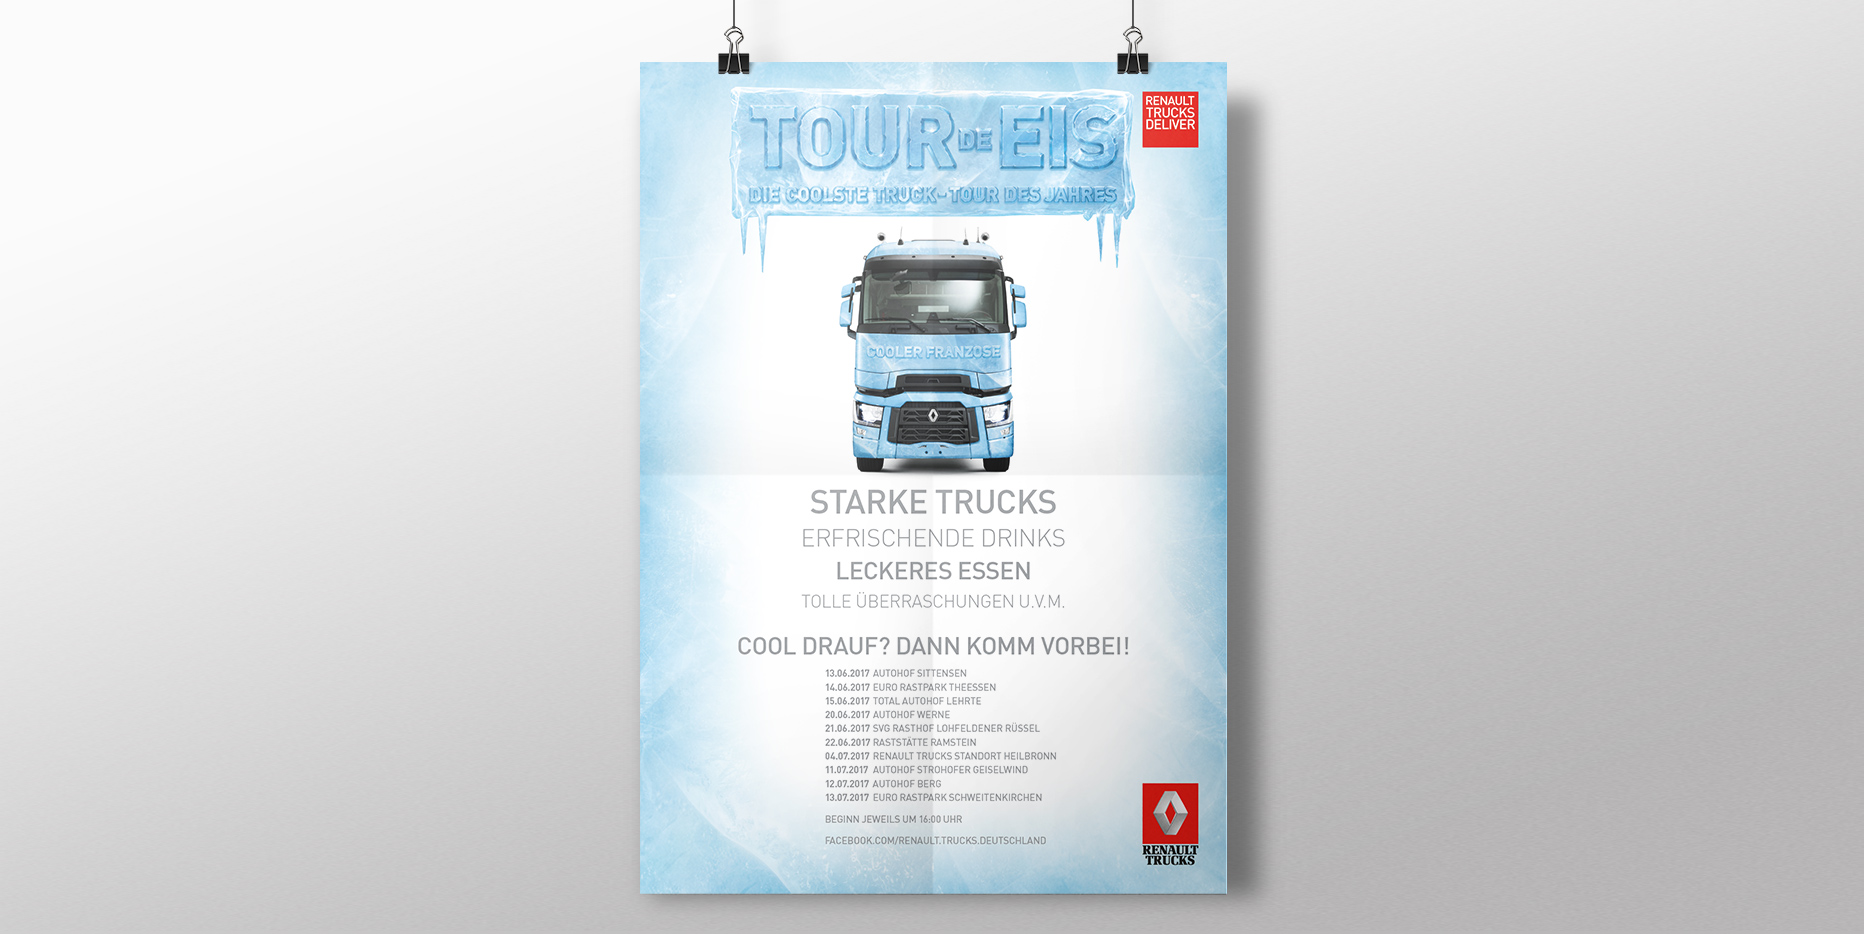 Roadshow-Marketing für Renault Trucks: Poster